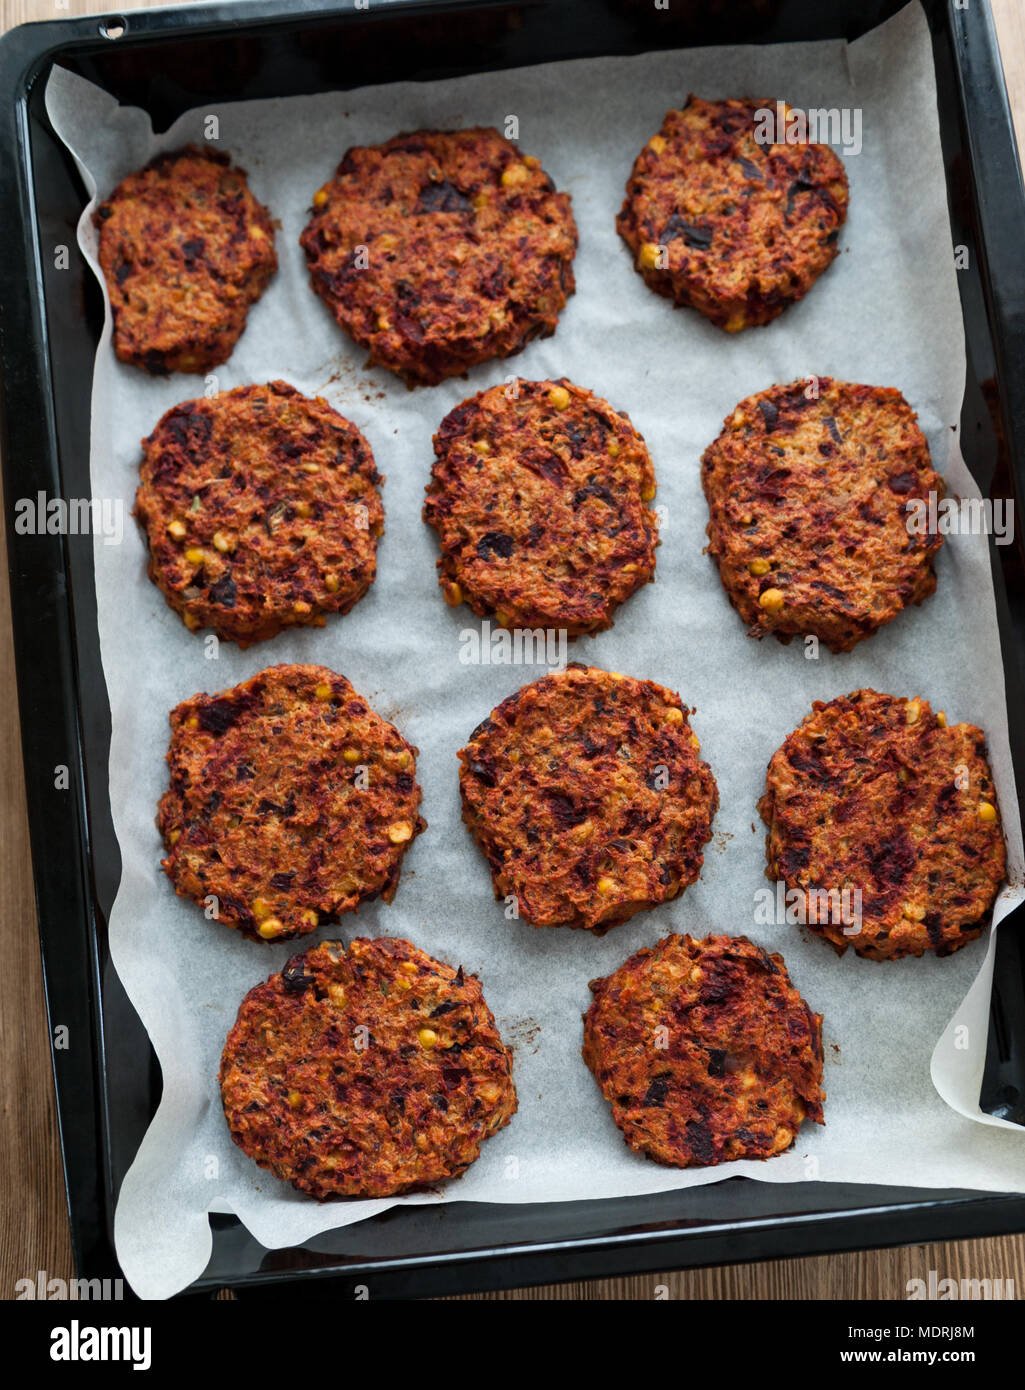 Vegetarian burgers with chickpeas and beetroot in the oven Stock Photo